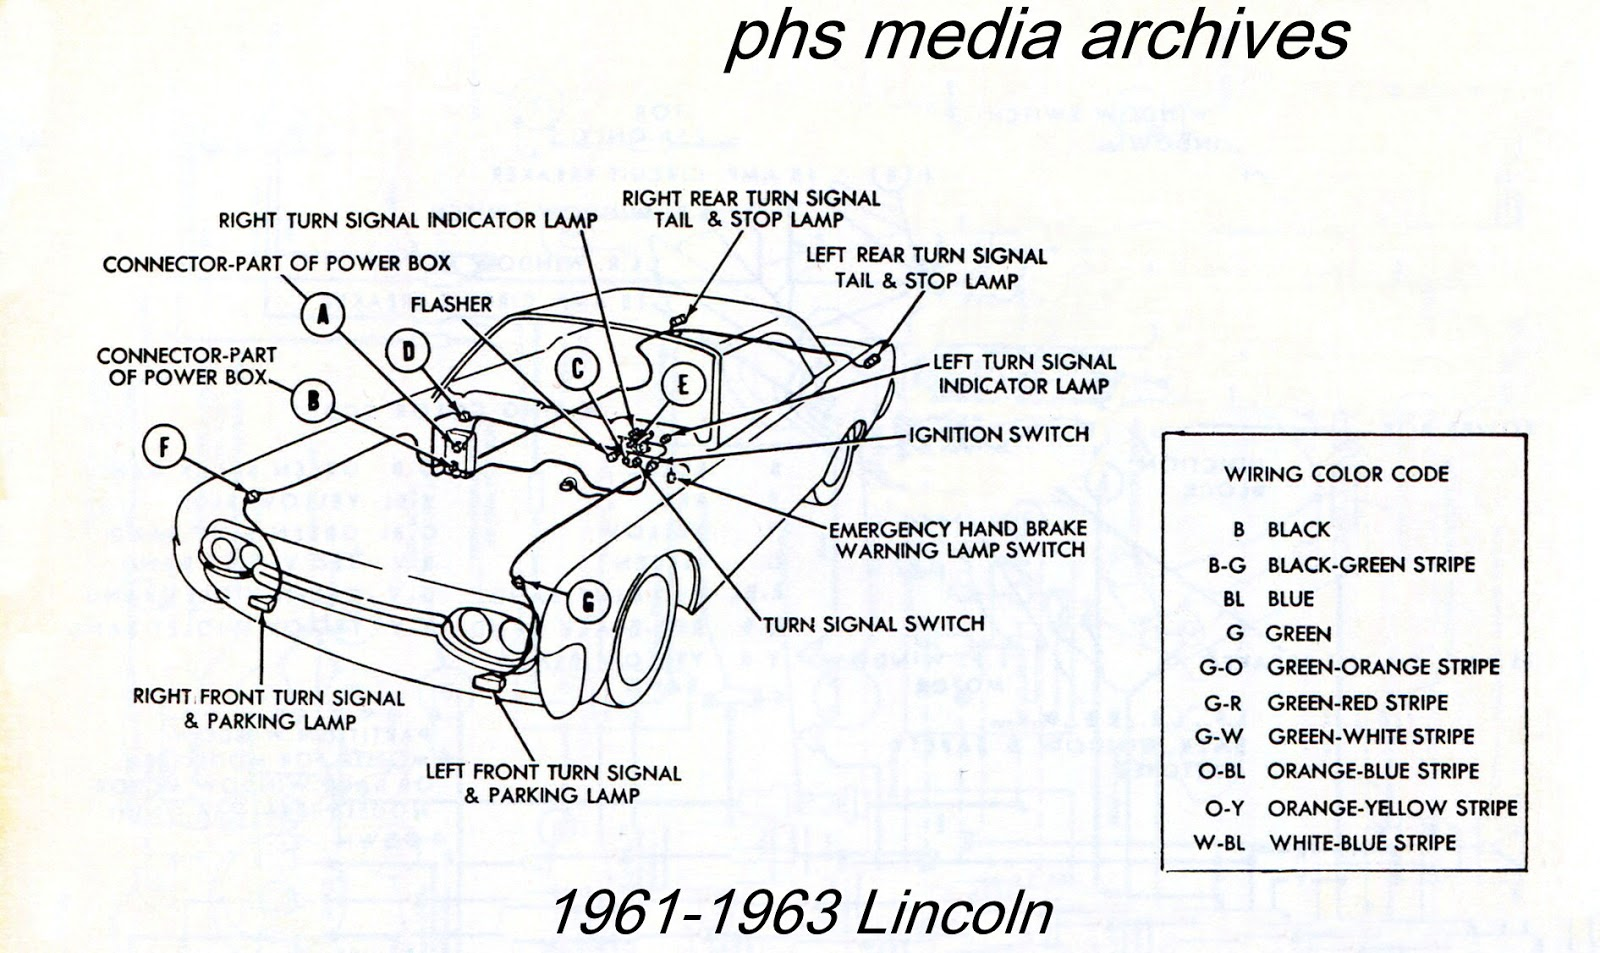 Lincoln Fog Lights Wiring Diagram Trusted Diagrams Speakers Tech Series 1960 1964 Phscollectorcarworld Rh Blogspot Com Light Simple